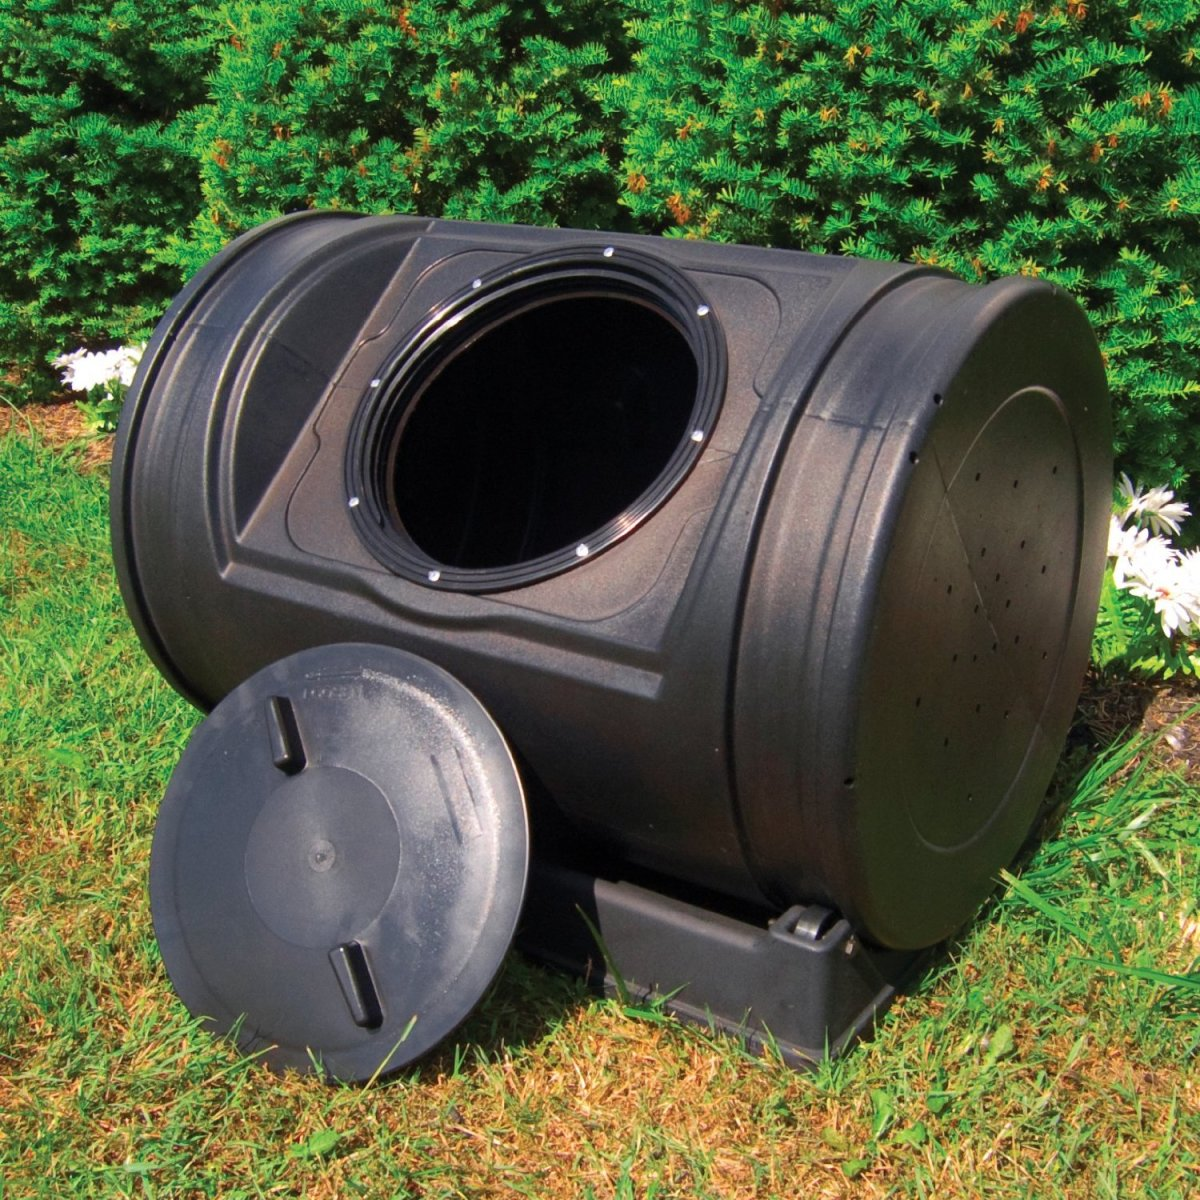 How To Stop Kitchen Compost Bin From Smelling